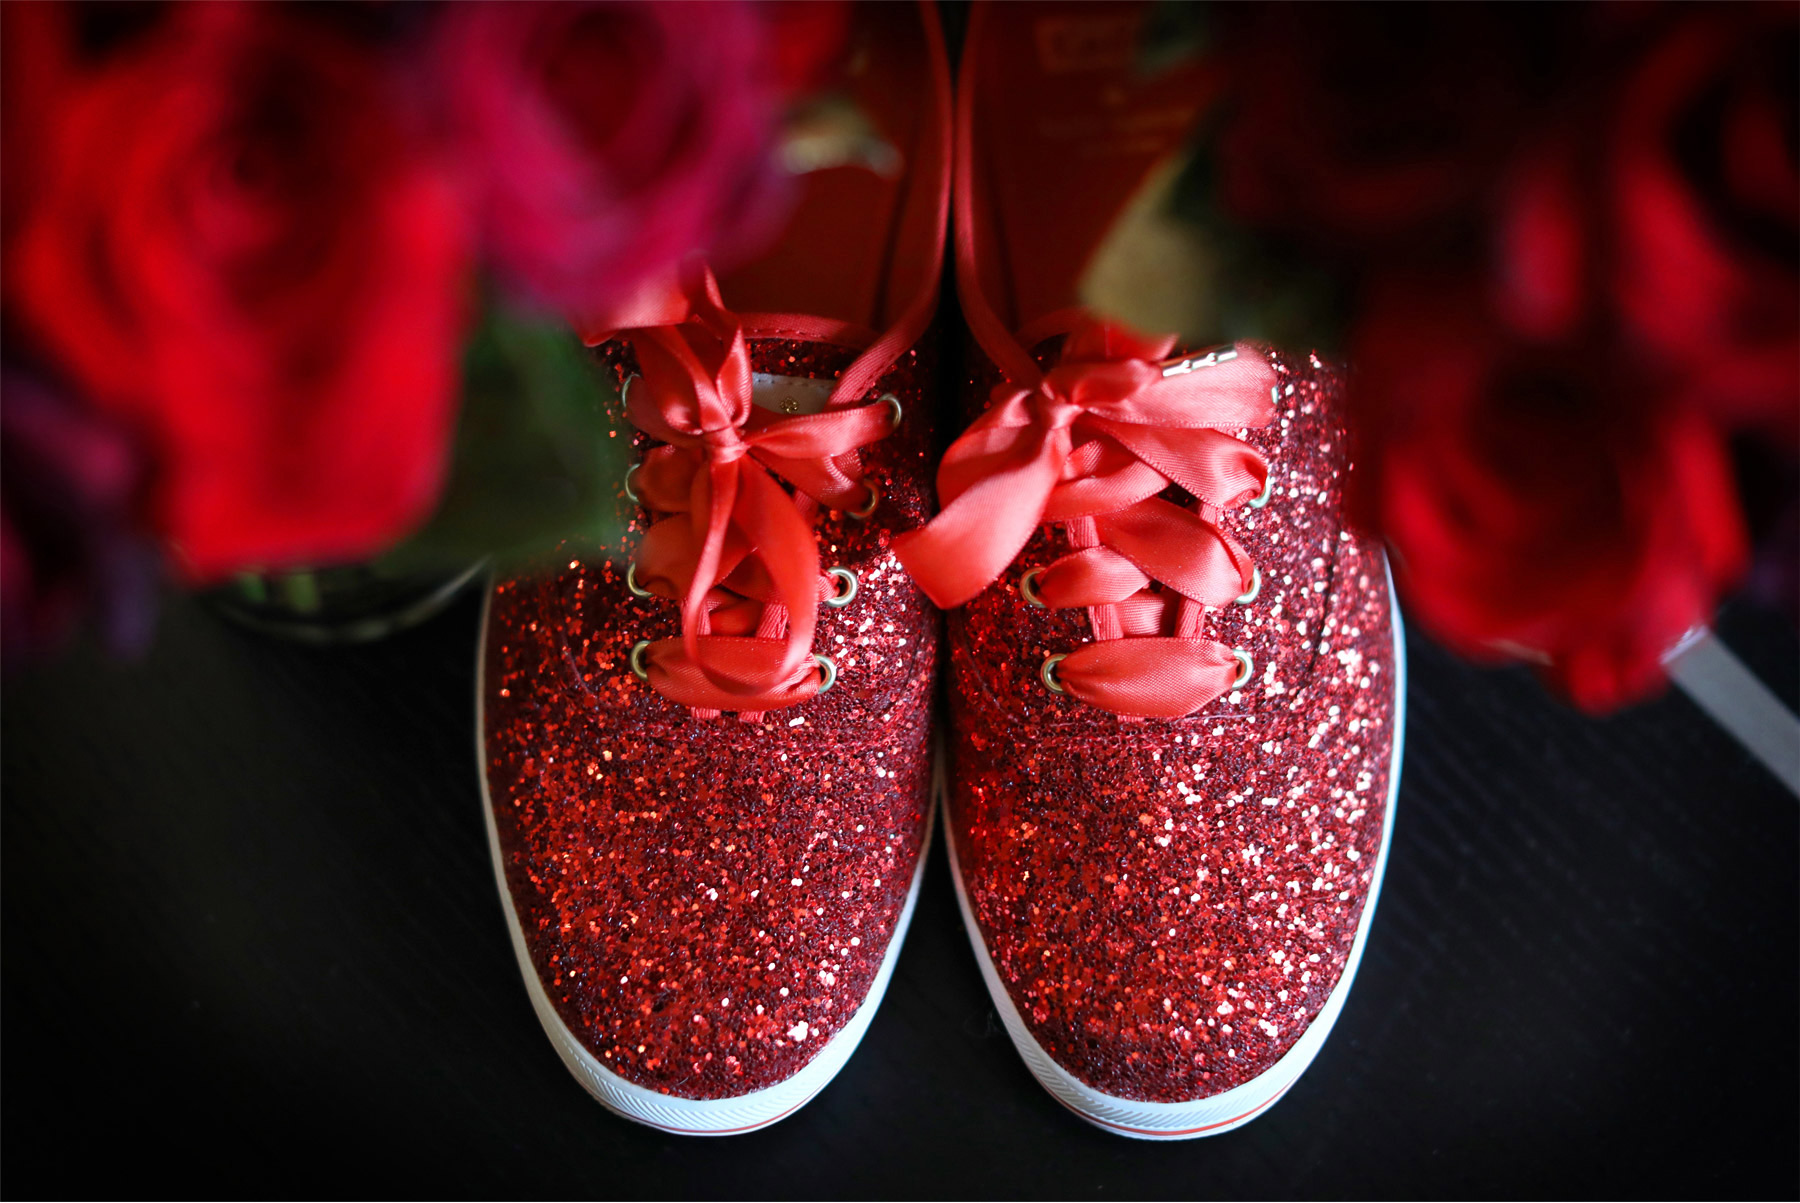 01-Minneapolis-Wedding-Photography-by-Vick-Photography-Details-Red-Glitter-Shoes-Sneakers-Shayla-and-Kyle.jpg